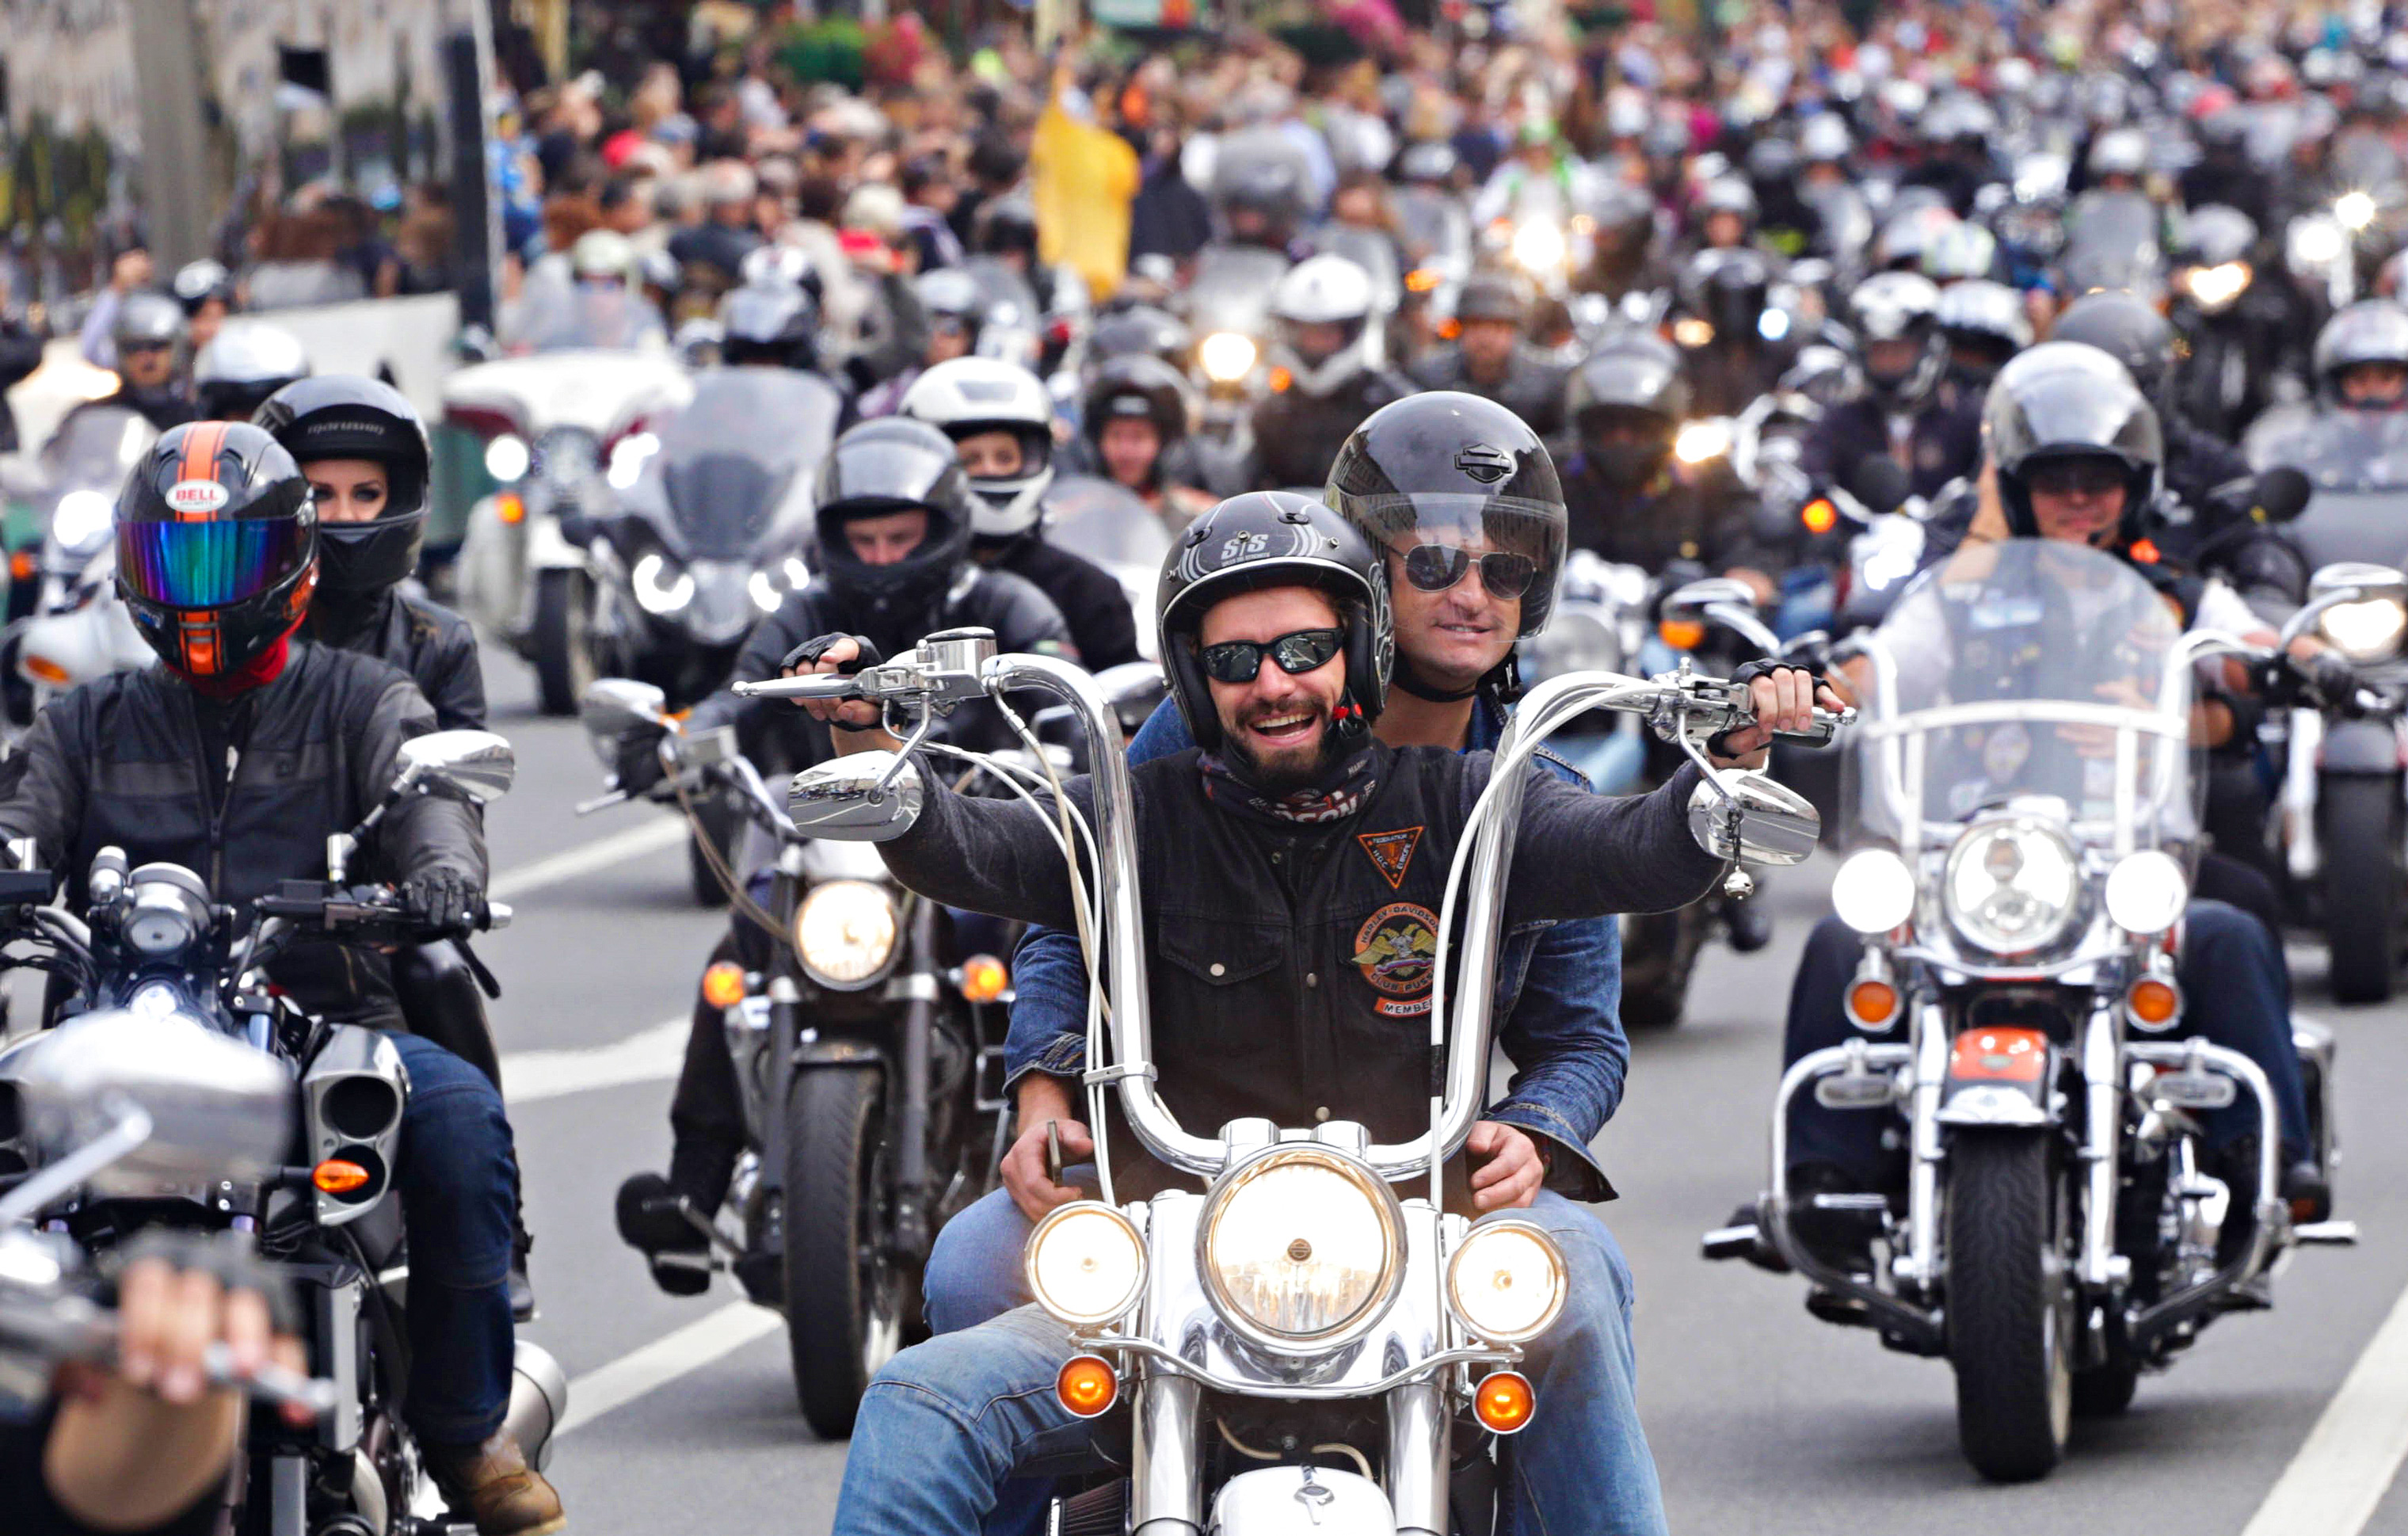 """Thousands of bikers ride their Harley Davidson motorcycles on the streets of the city to mark """"Harley Days"""" bike festival in Saint-Petersburg, Russia on August 13, 2016."""